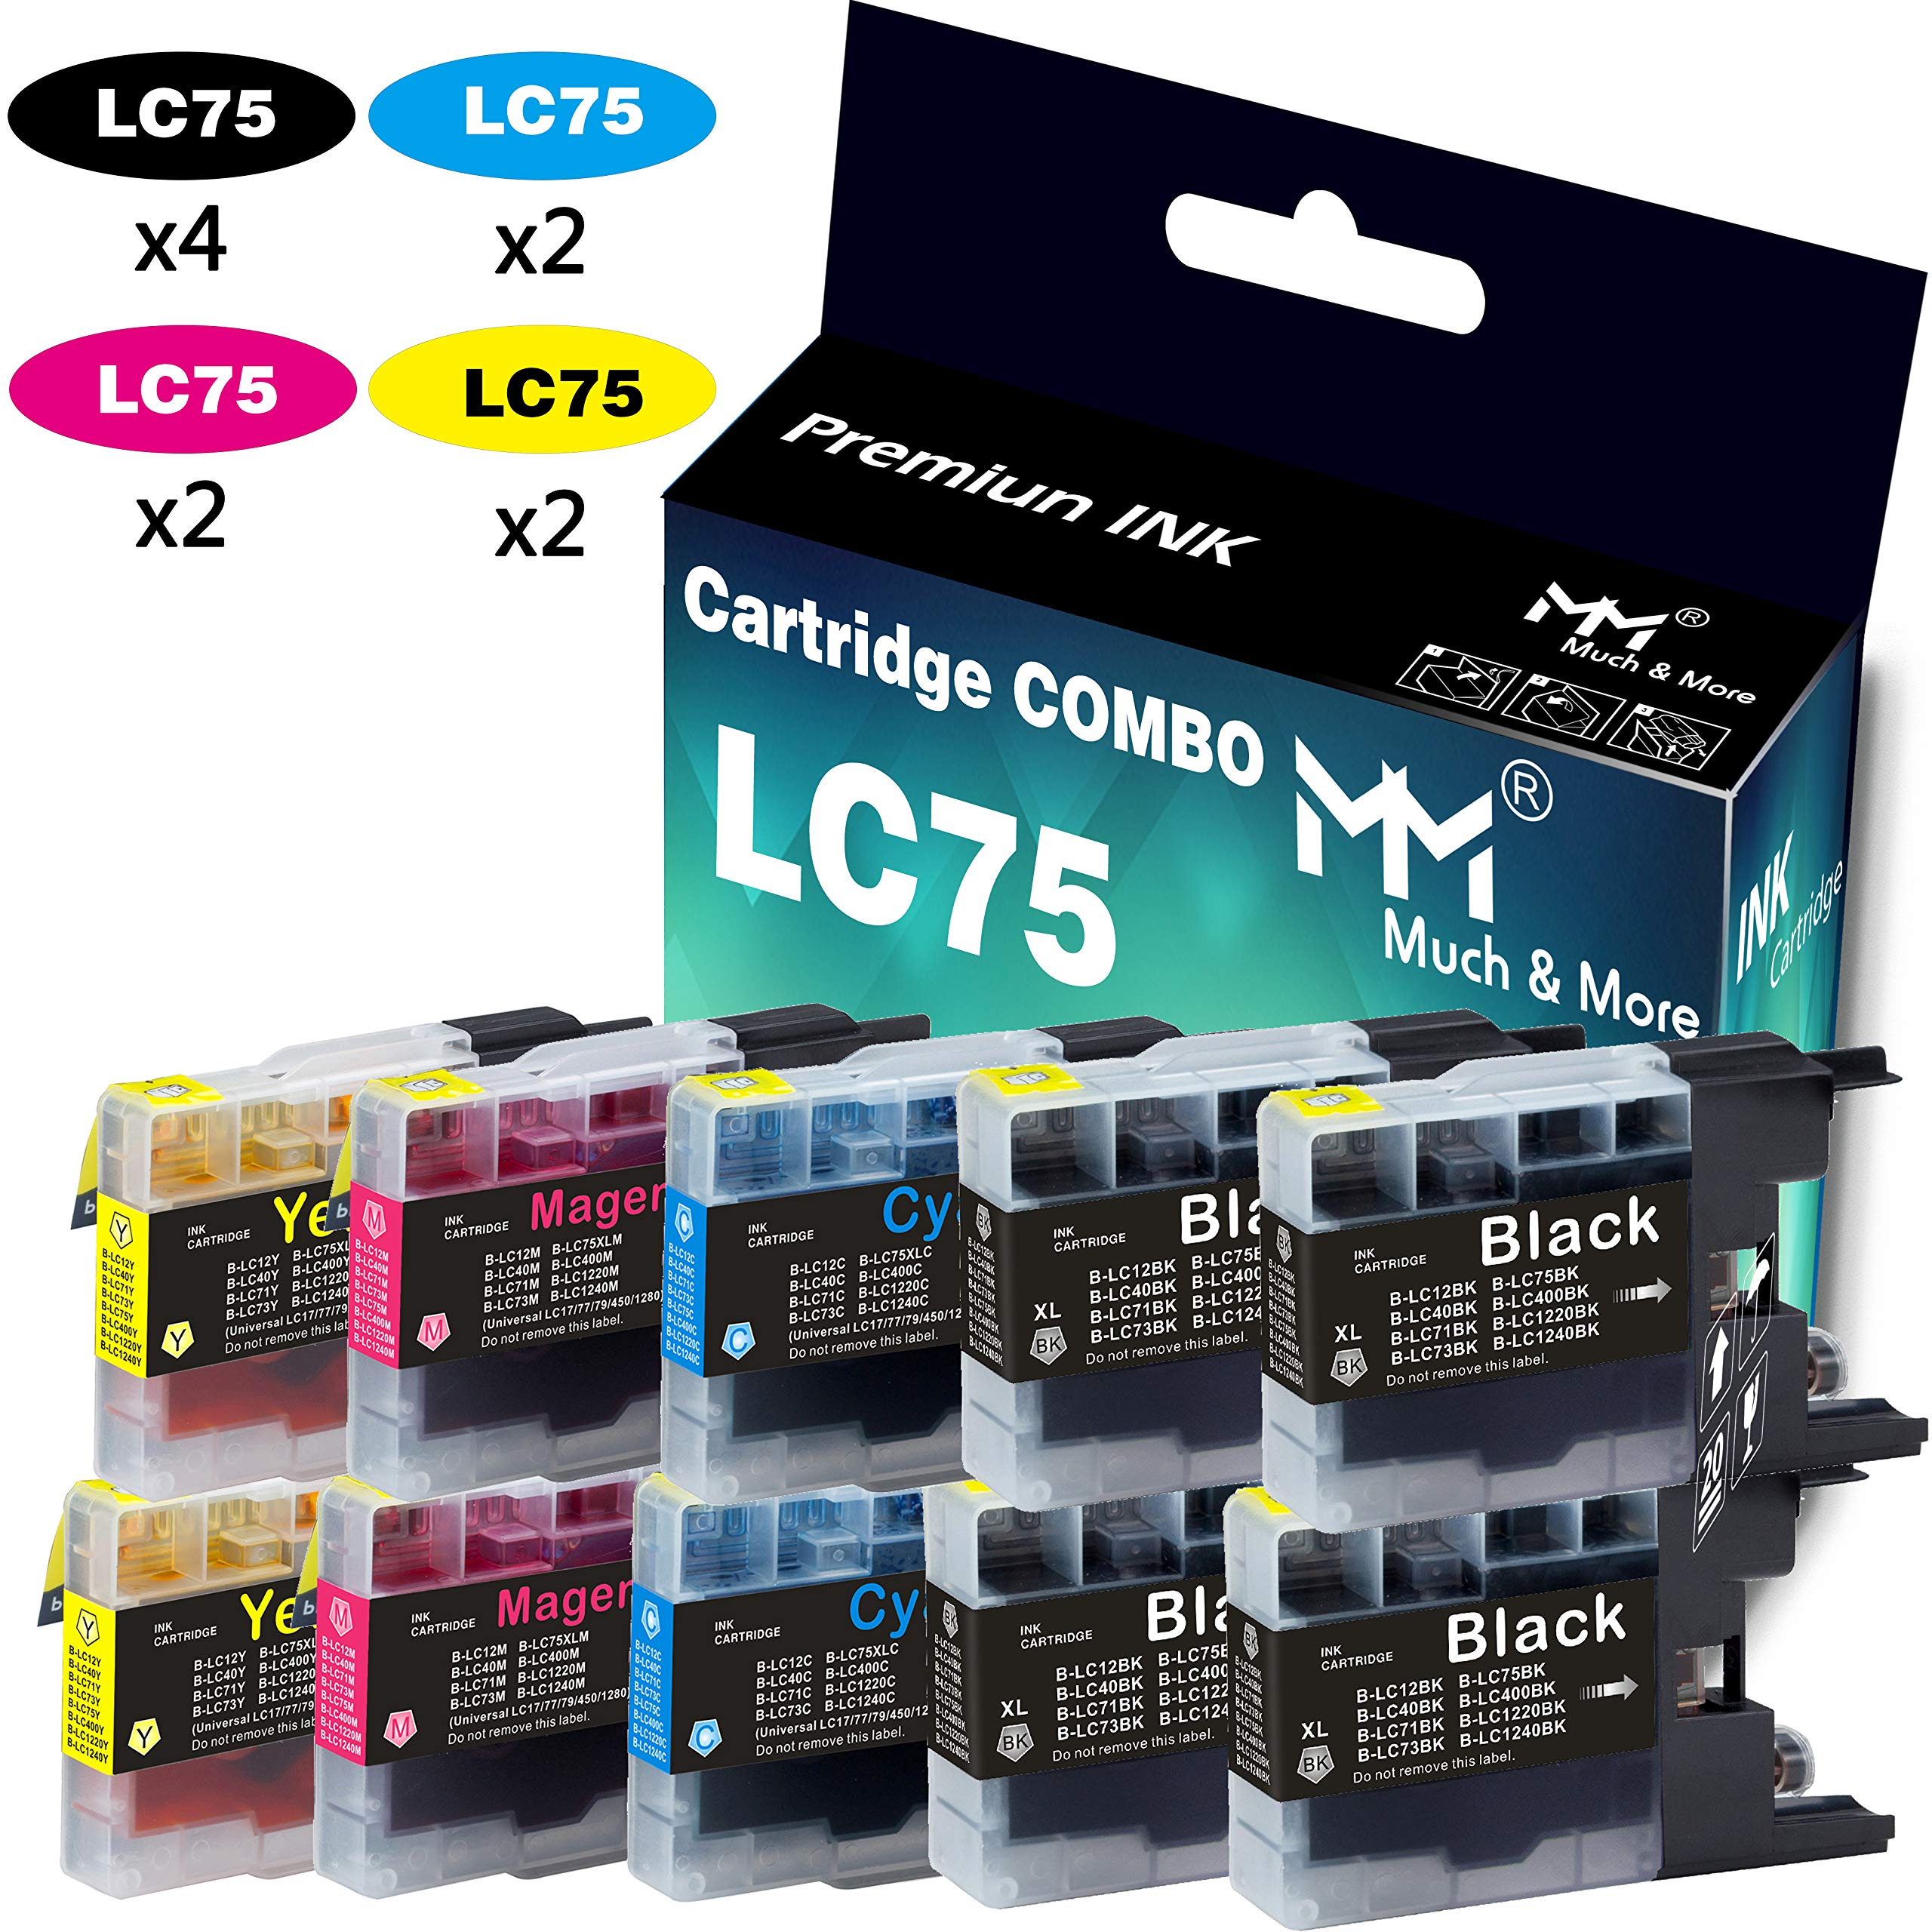 ESTON 6 Pack Replacements for Brother LC75XL Black LC75BK High Yield Fit for Brother MFC-J280W MFC-J6510DW